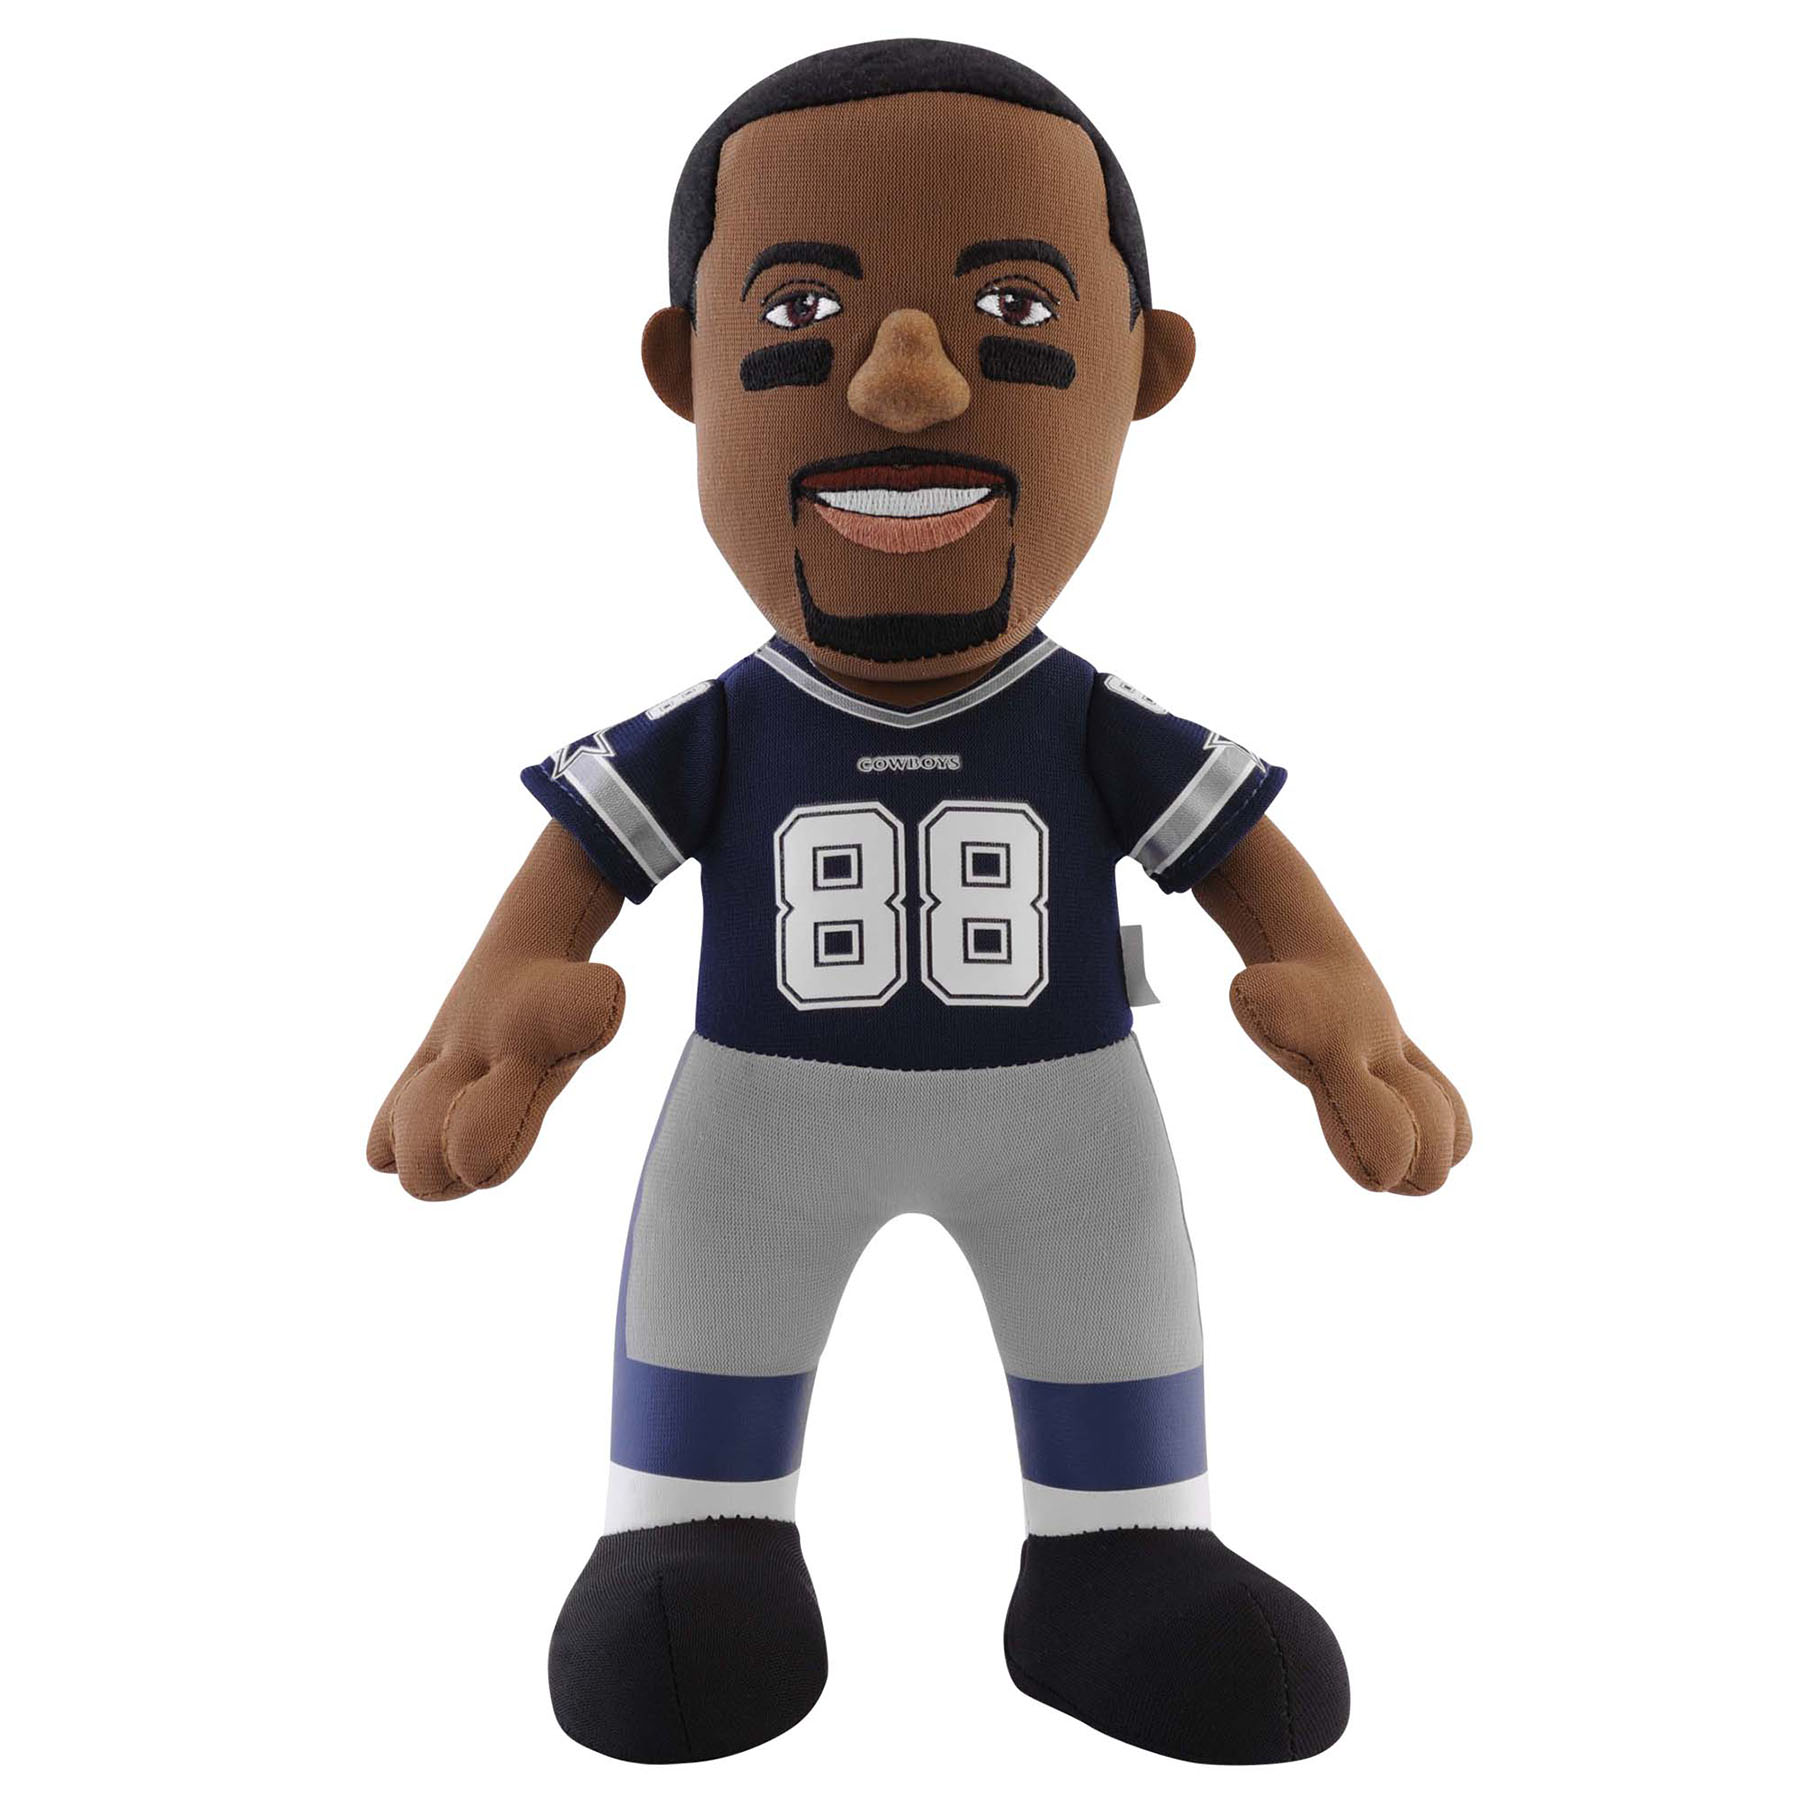 Dallas Cowboys Bleacher Creature 10 inch Plush - Dez Bryant